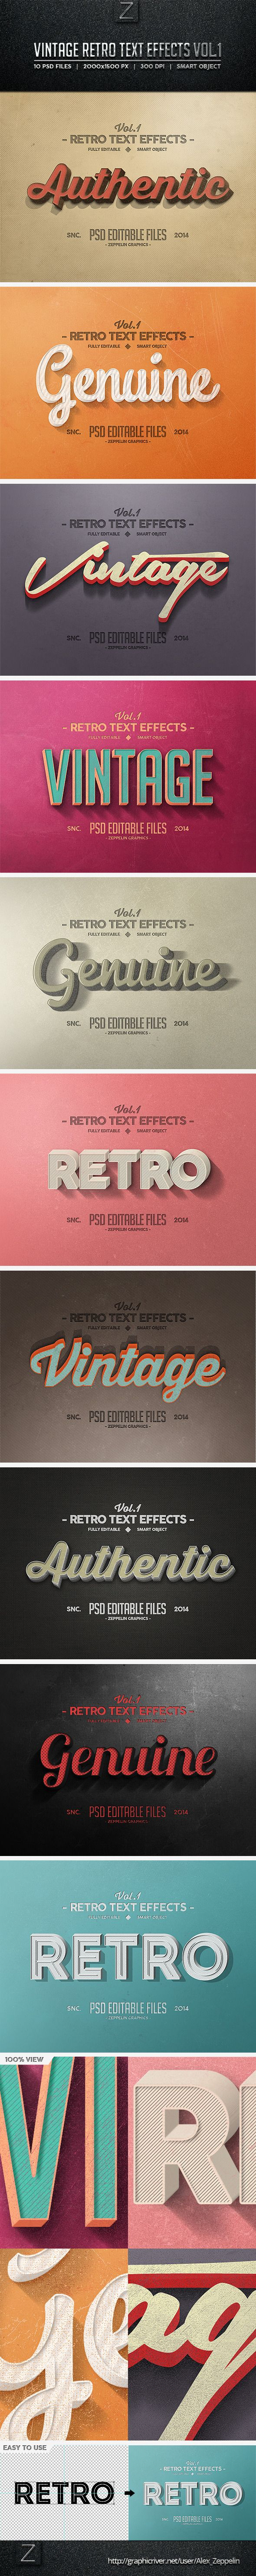 Vintage Text Effects Vol.1 - Text Effects Actions